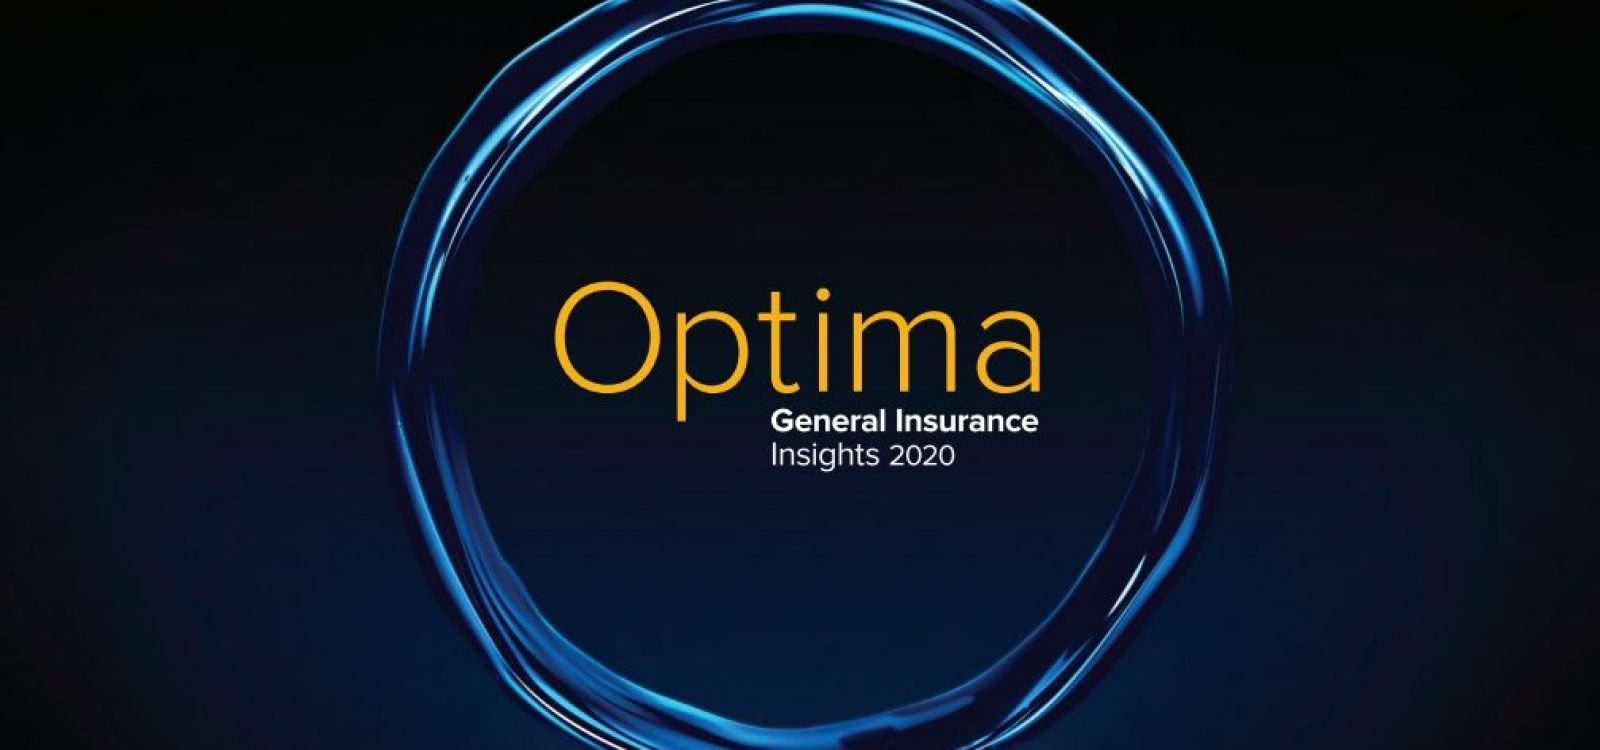 General insurance sector performance analysis in annual Optima publication